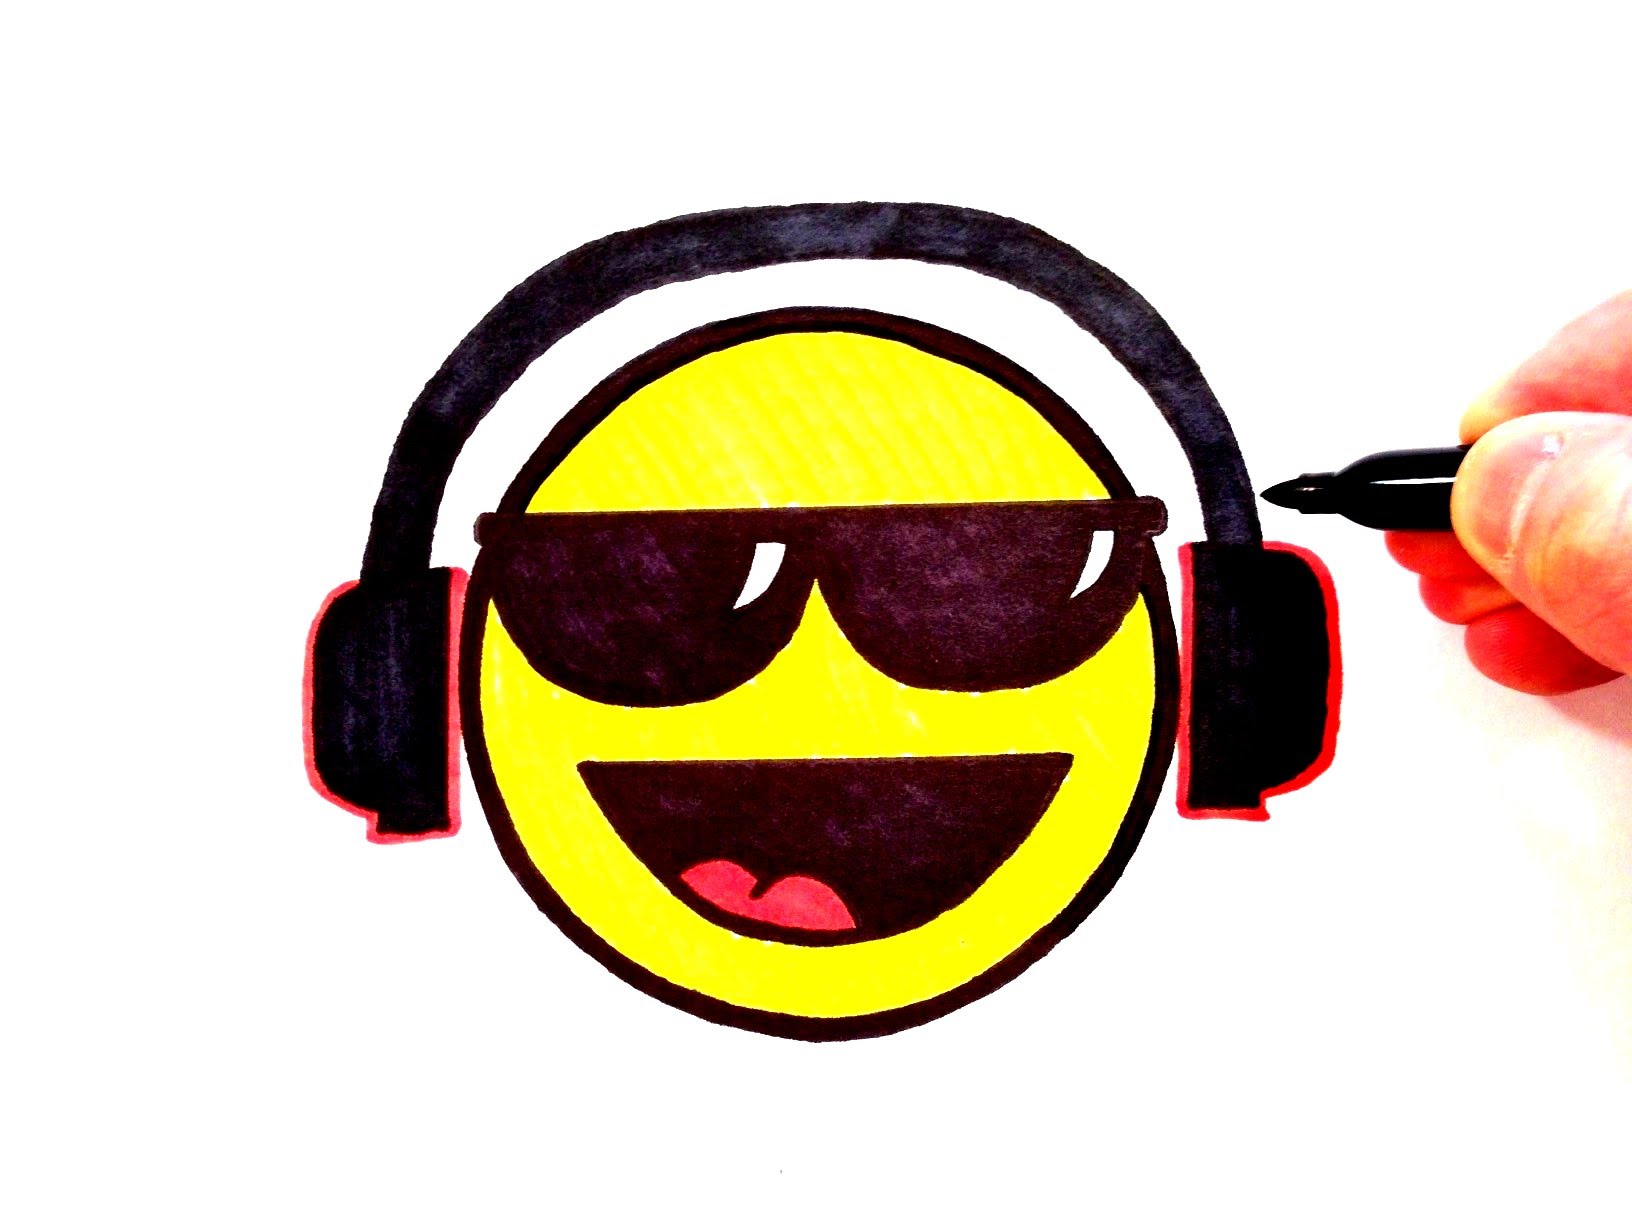 1632x1224 How To Draw A Cool Smiley Face With Sunglasses And Head Phones